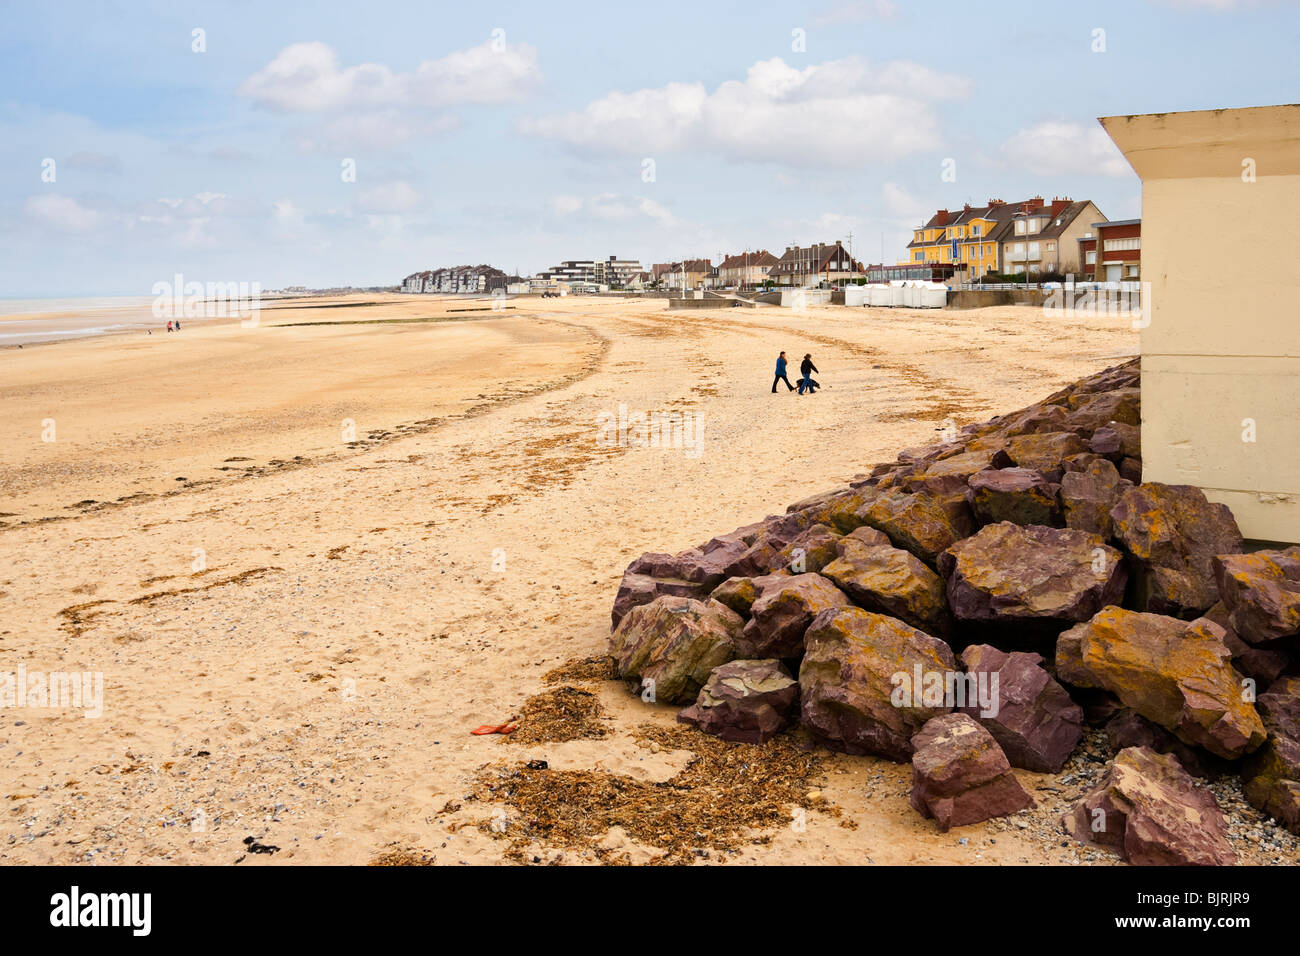 The beach at Courseulles sur mer, Normandy, France known as Juno beach in WW2 - Stock Image